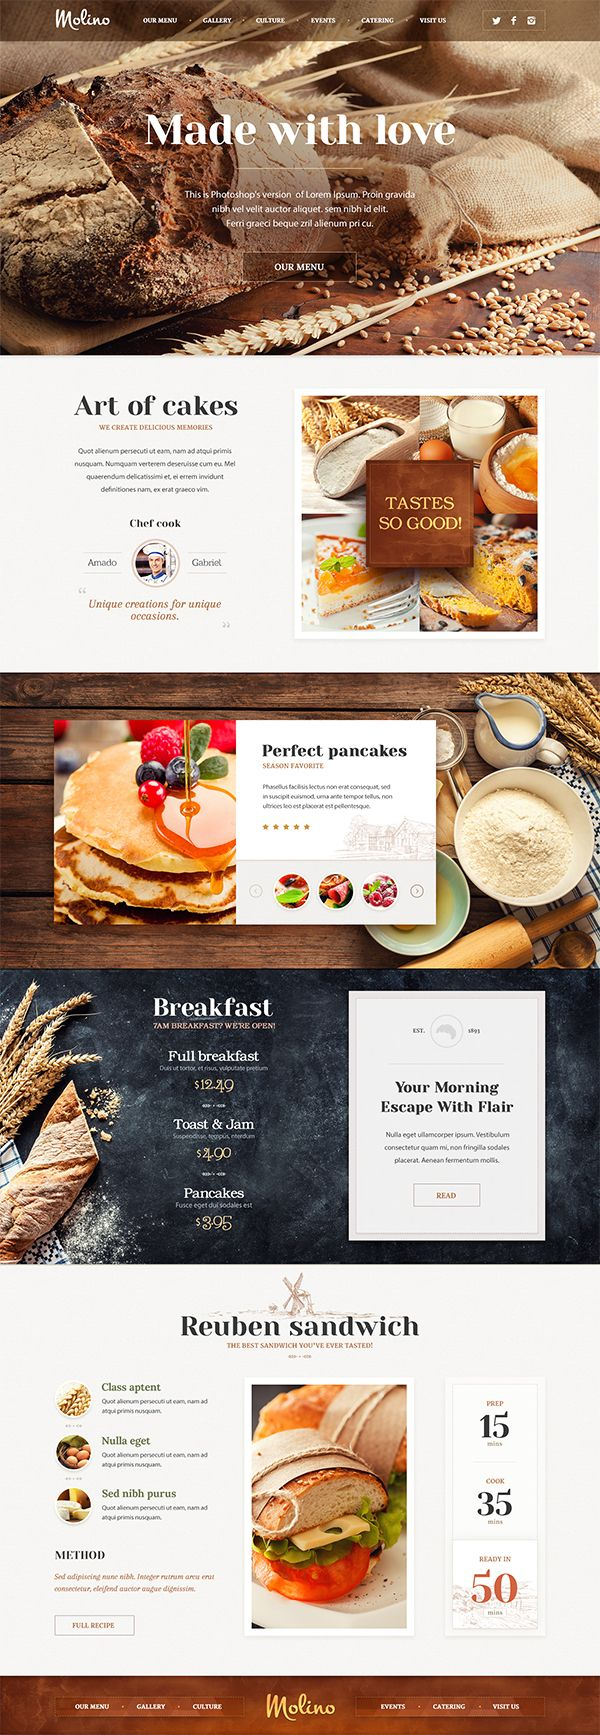 Molino :: Traditional Bakery – website design by Mike|CreativeMints, via Behance … tastes so good!